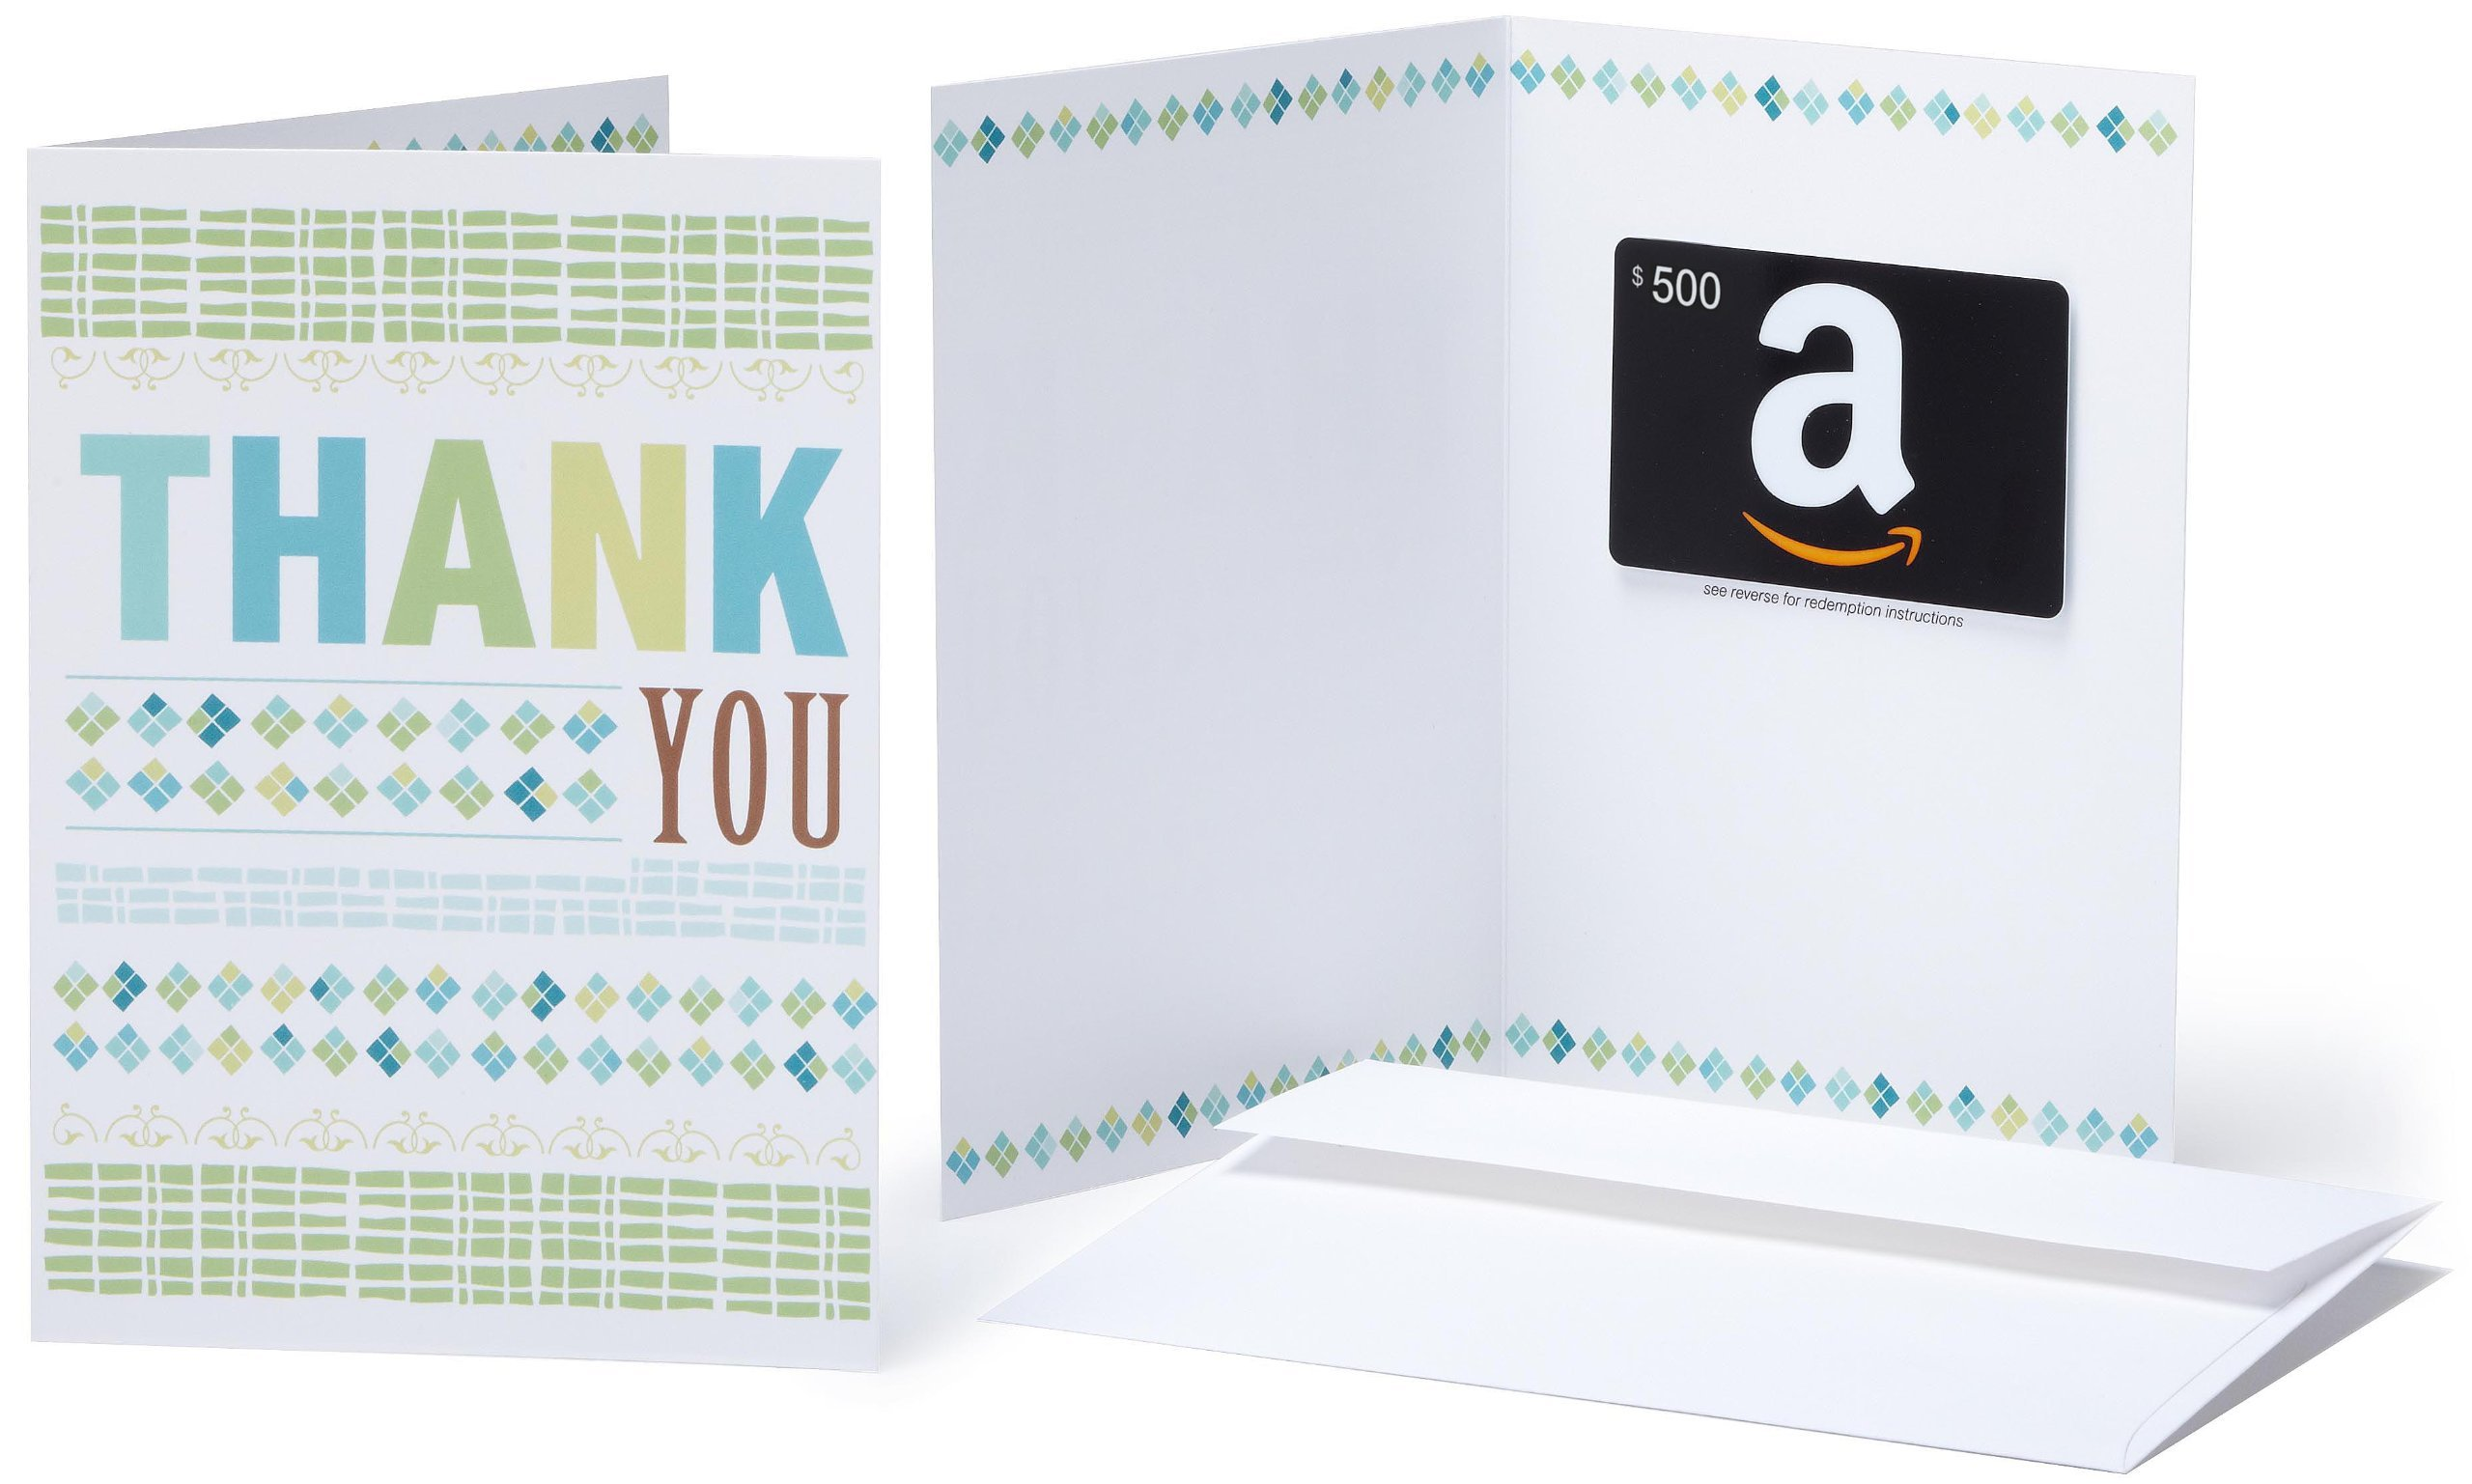 Amazon.com $500 Gift Card in a Greeting Card (Thank You Design) by Amazon (Image #1)